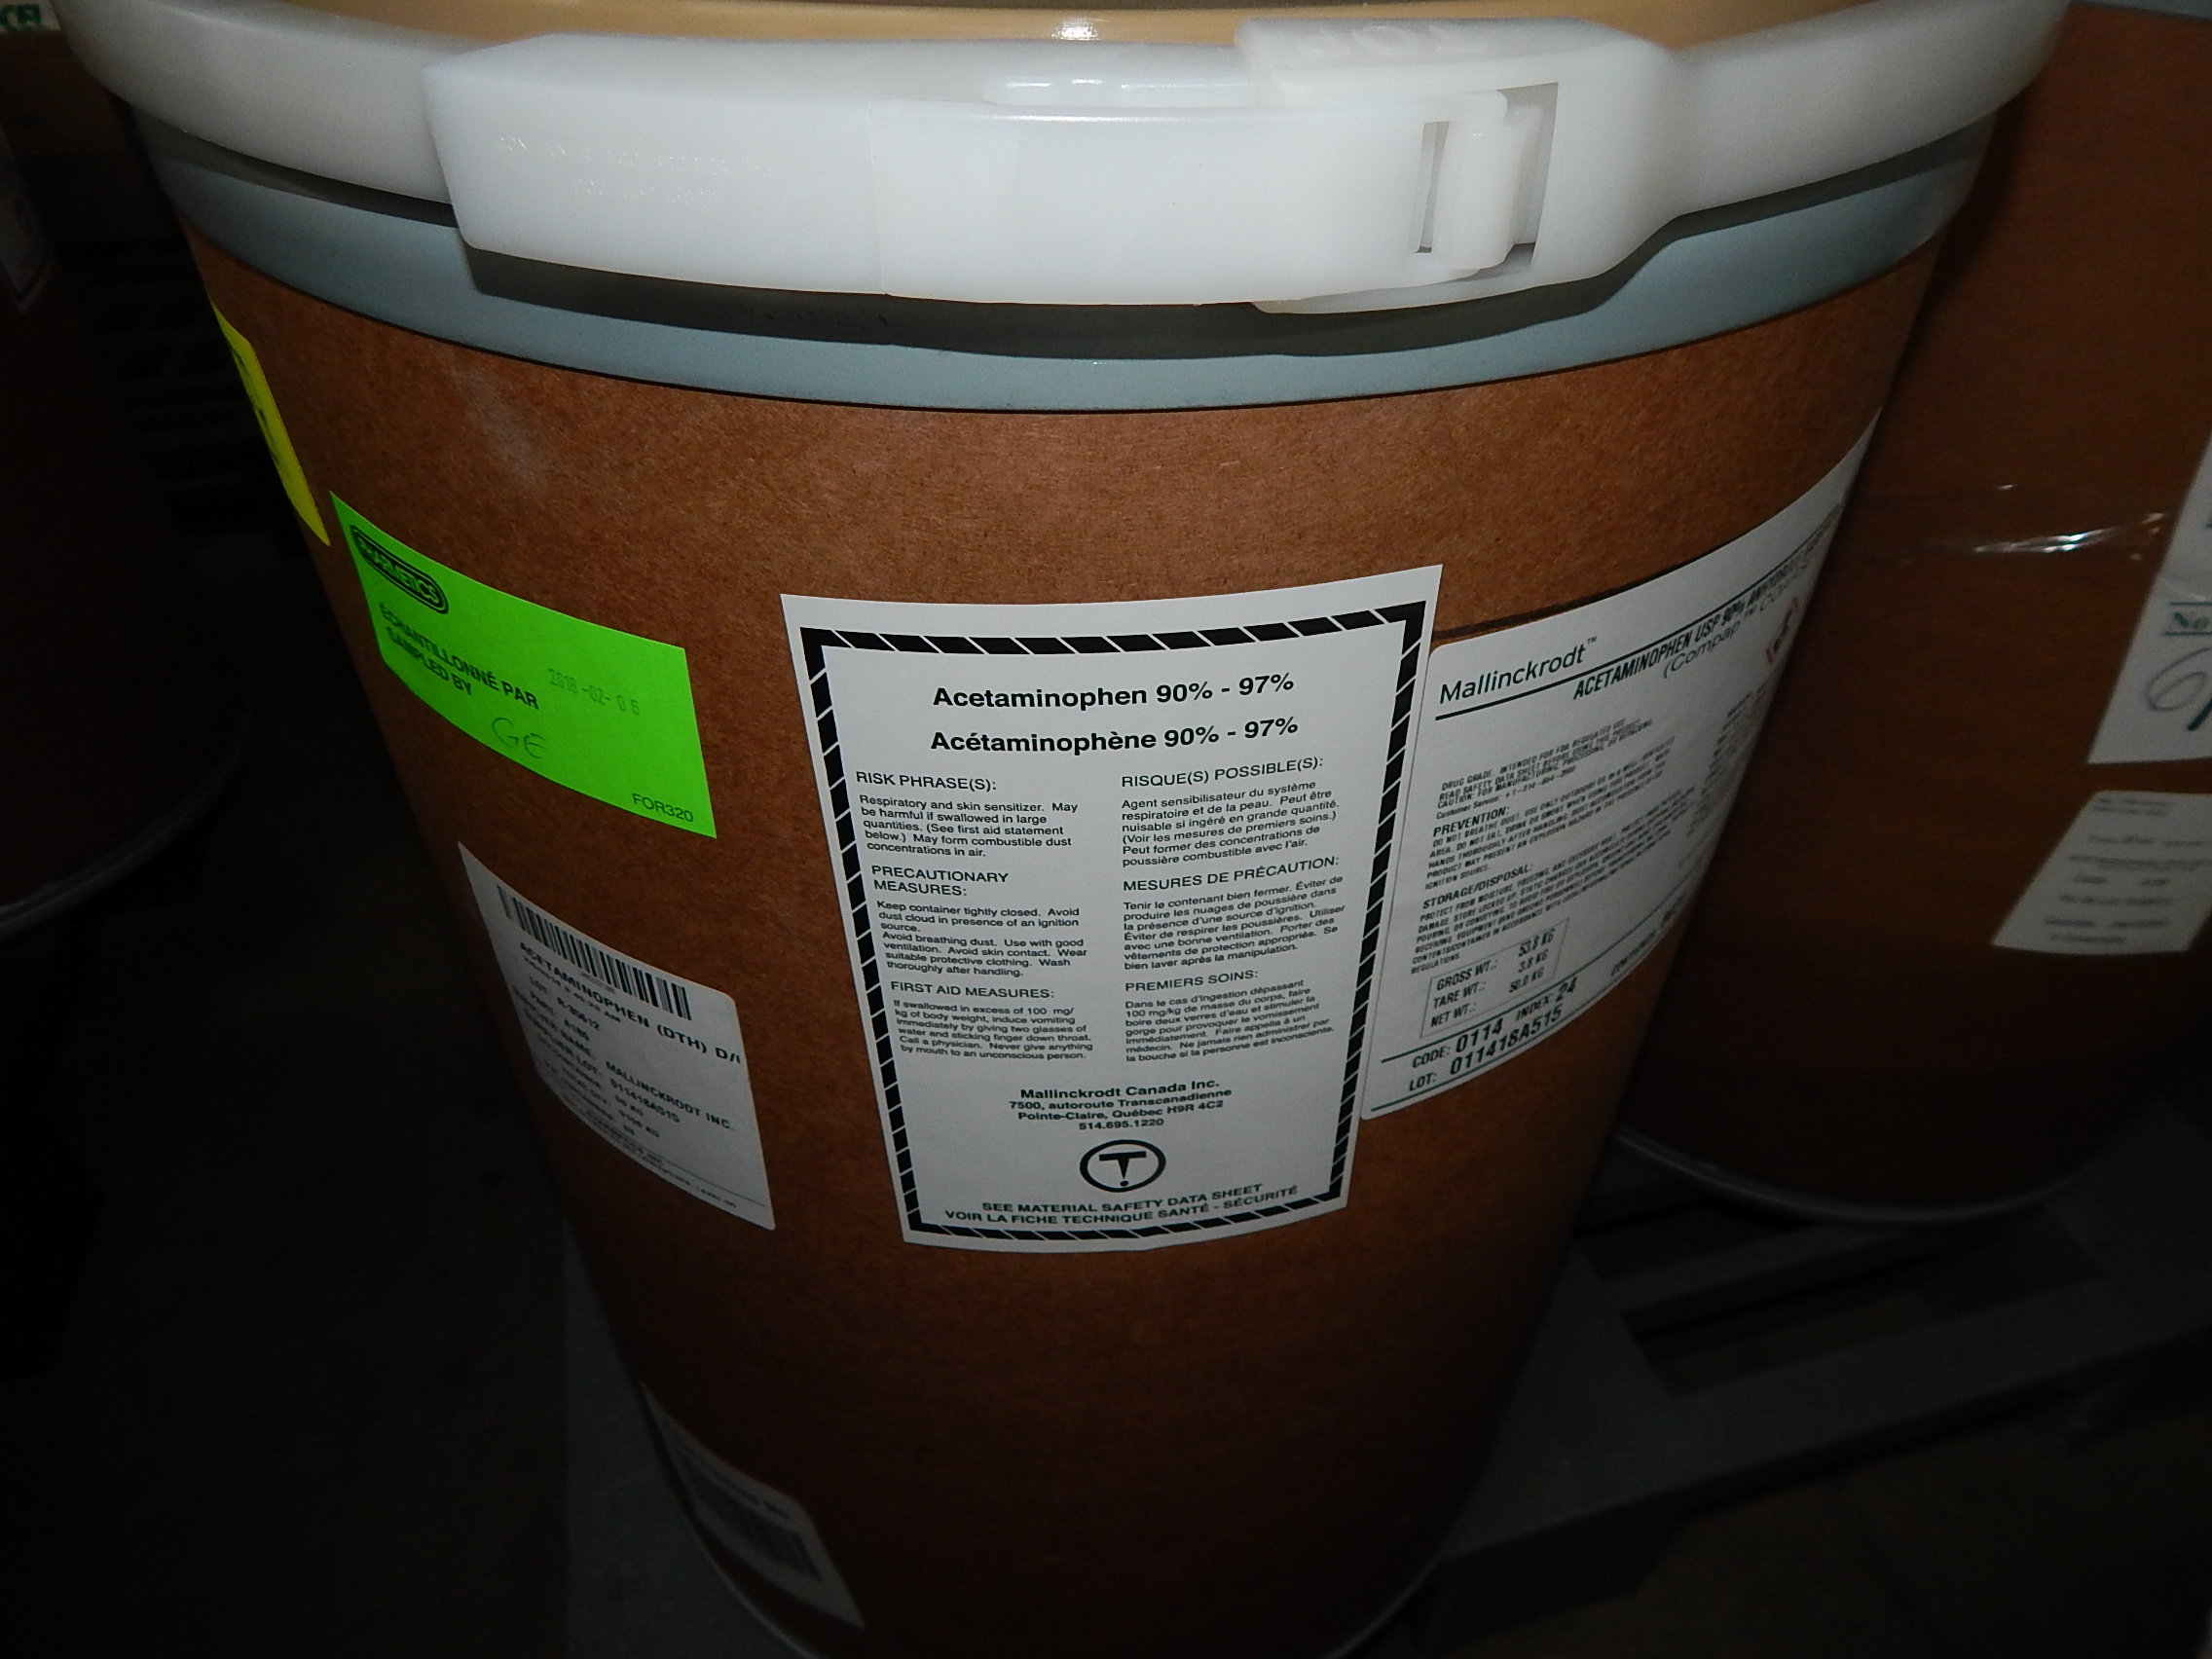 Lot 86 - LOT/ SKID WITH CONTENTS CONSISTING OF 50KG DRUMS OF ACETAMINOPHEN